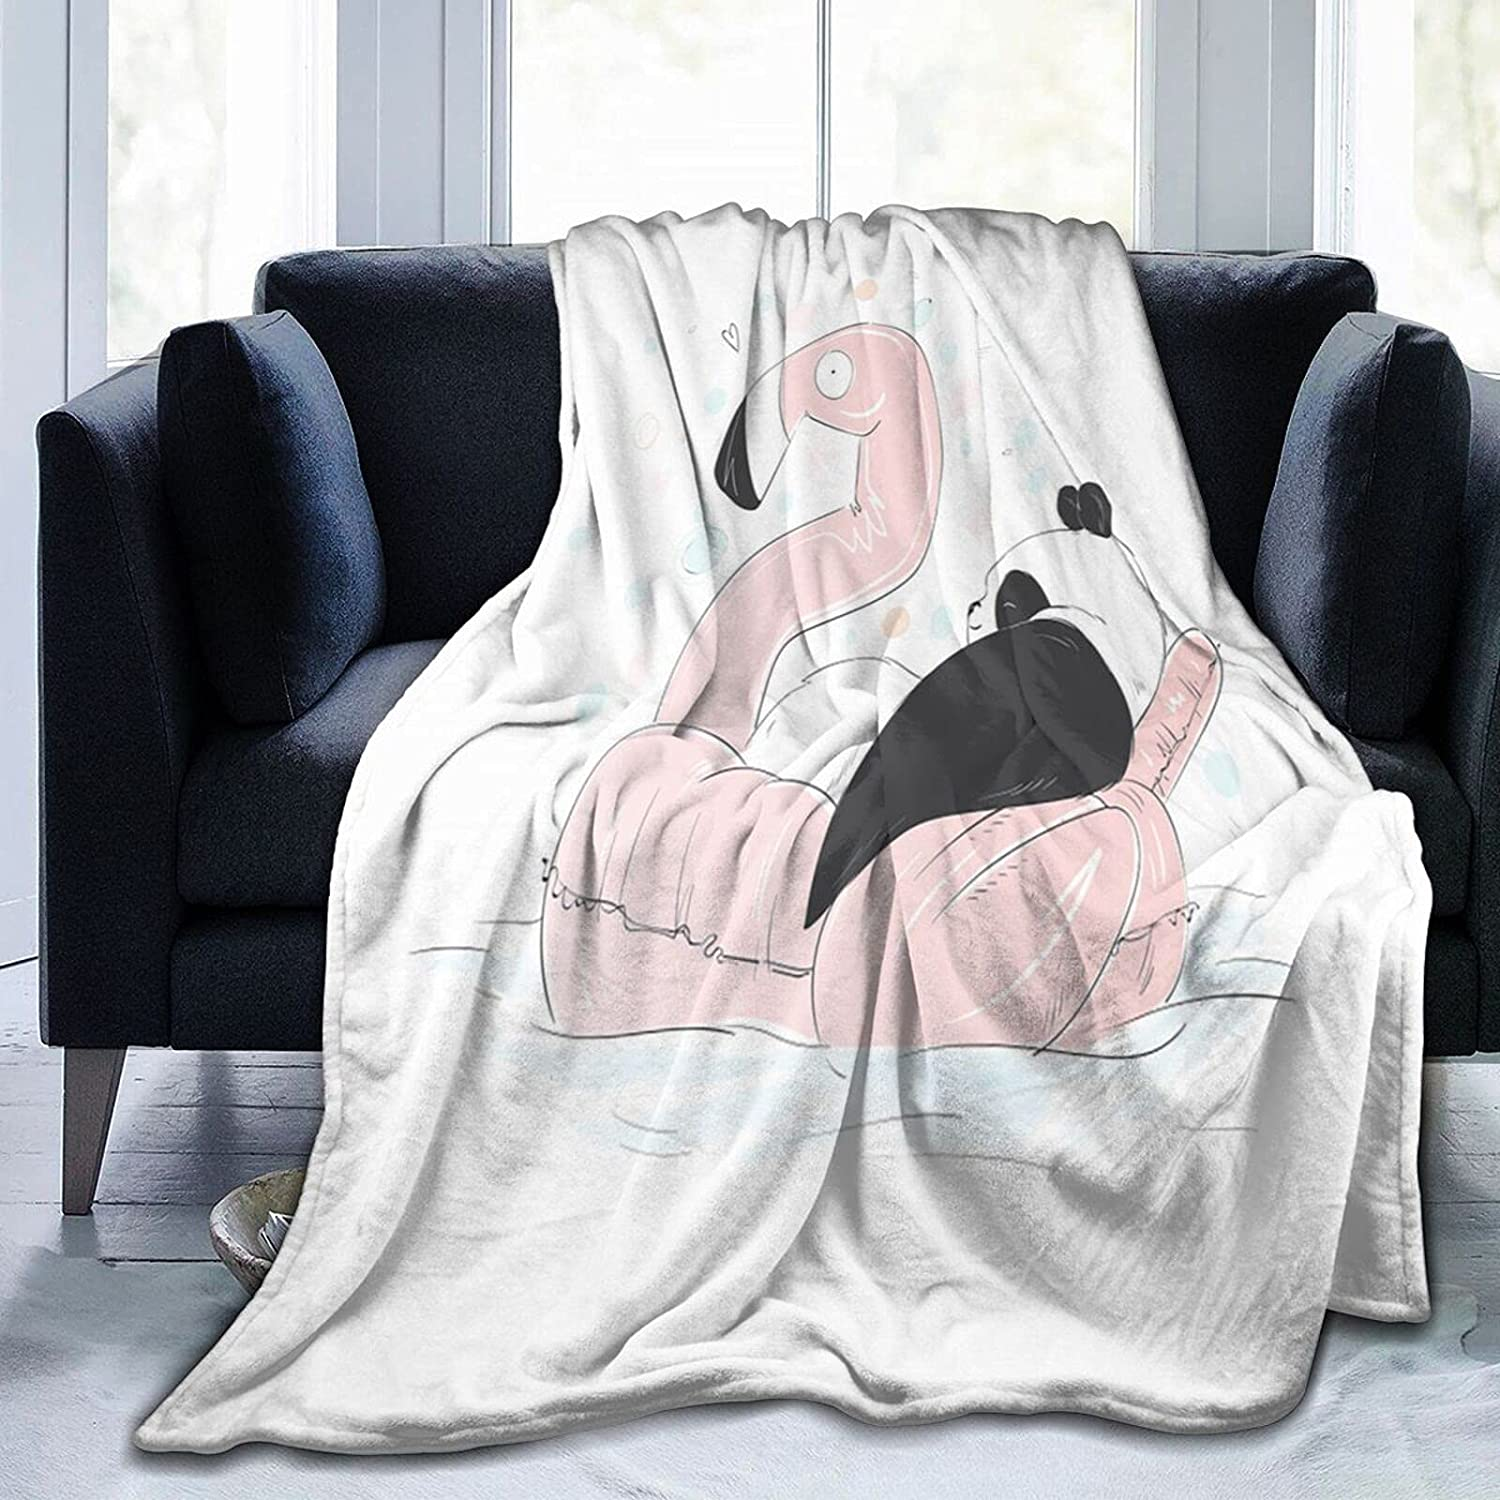 I'm on Vacation Blanket sale Soft Wo Max 84% OFF Comfortable Super Micro and